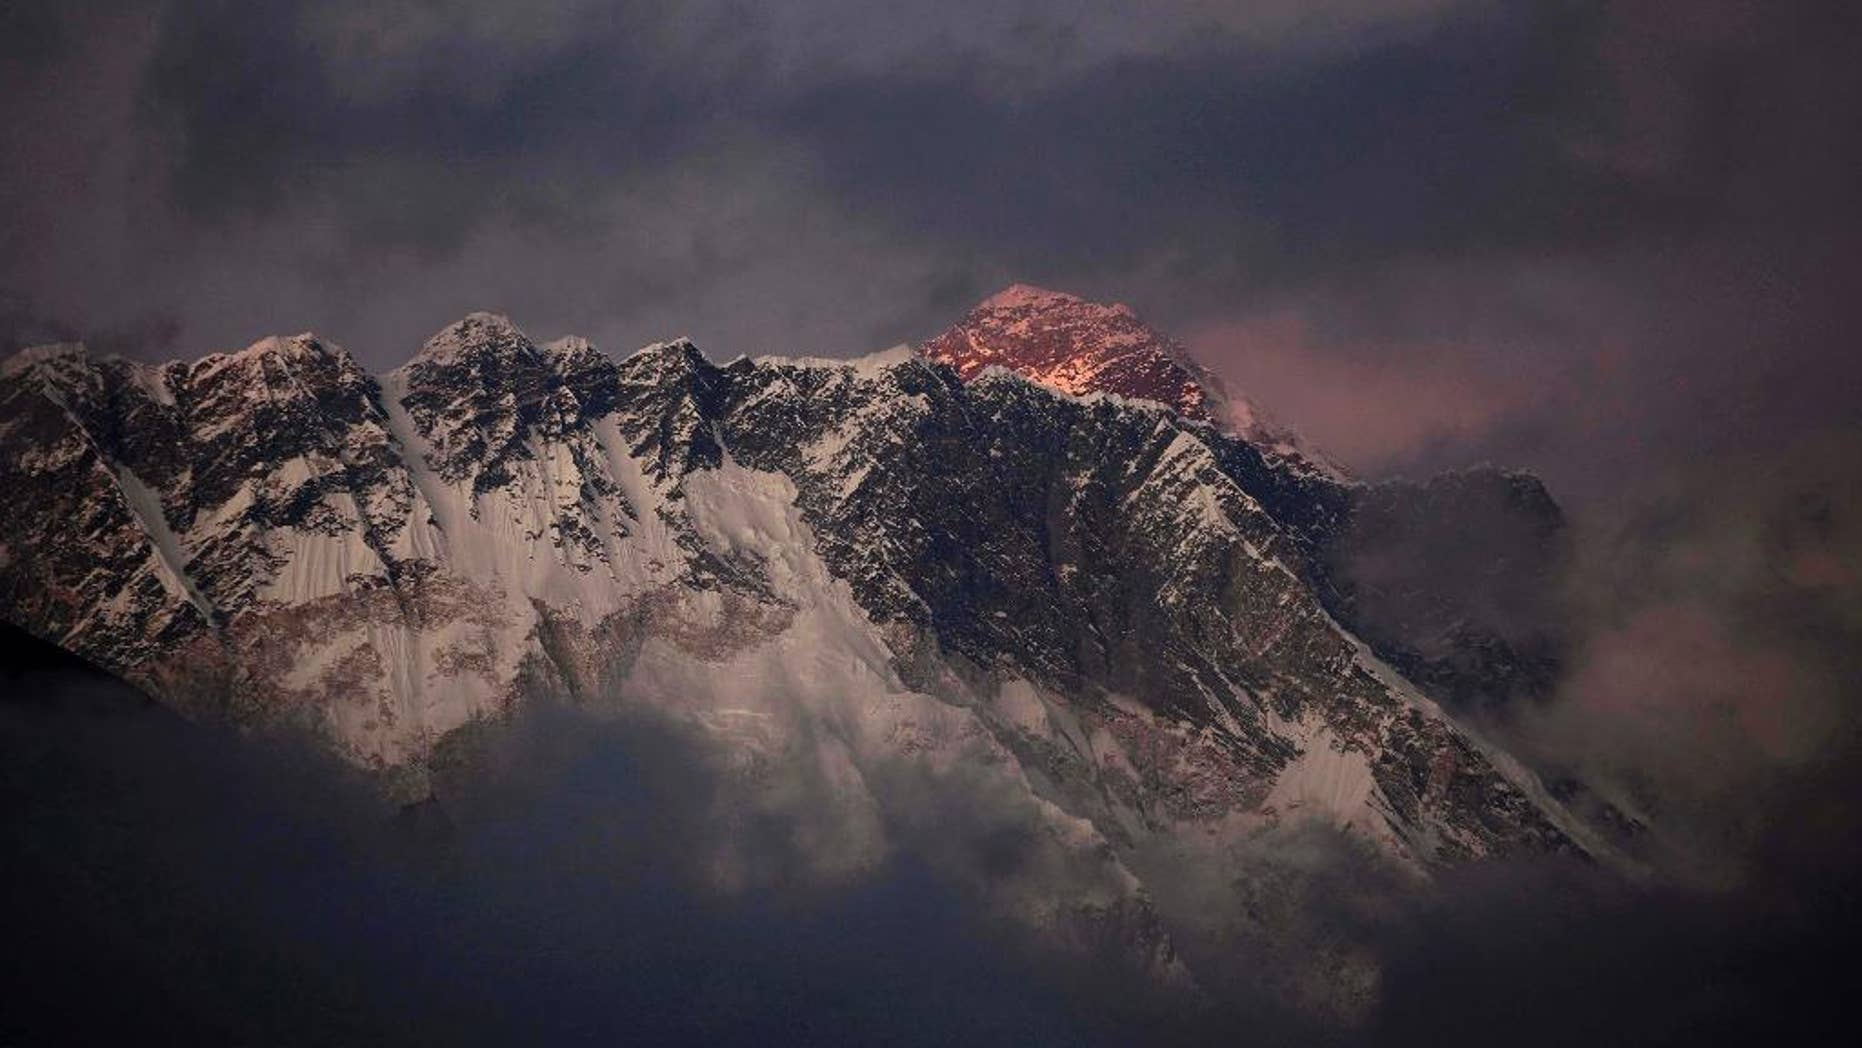 FILE - In this Oct. 27, 2011 file photo, the last light of the day sets on Mount Everest as it rises behind Mount Nuptse as seen from Tengboche, in the Himalaya's Khumbu region, Nepal. Nepal is improving weather forecasting systems, stepping up security and promises swift rescues if needed during the upcoming climbing season on Everest in attempt to recover from the worst mountaineering disaster on the world's highest peak last year, officials said Monday. (AP Photo/Kevin Frayer, File)